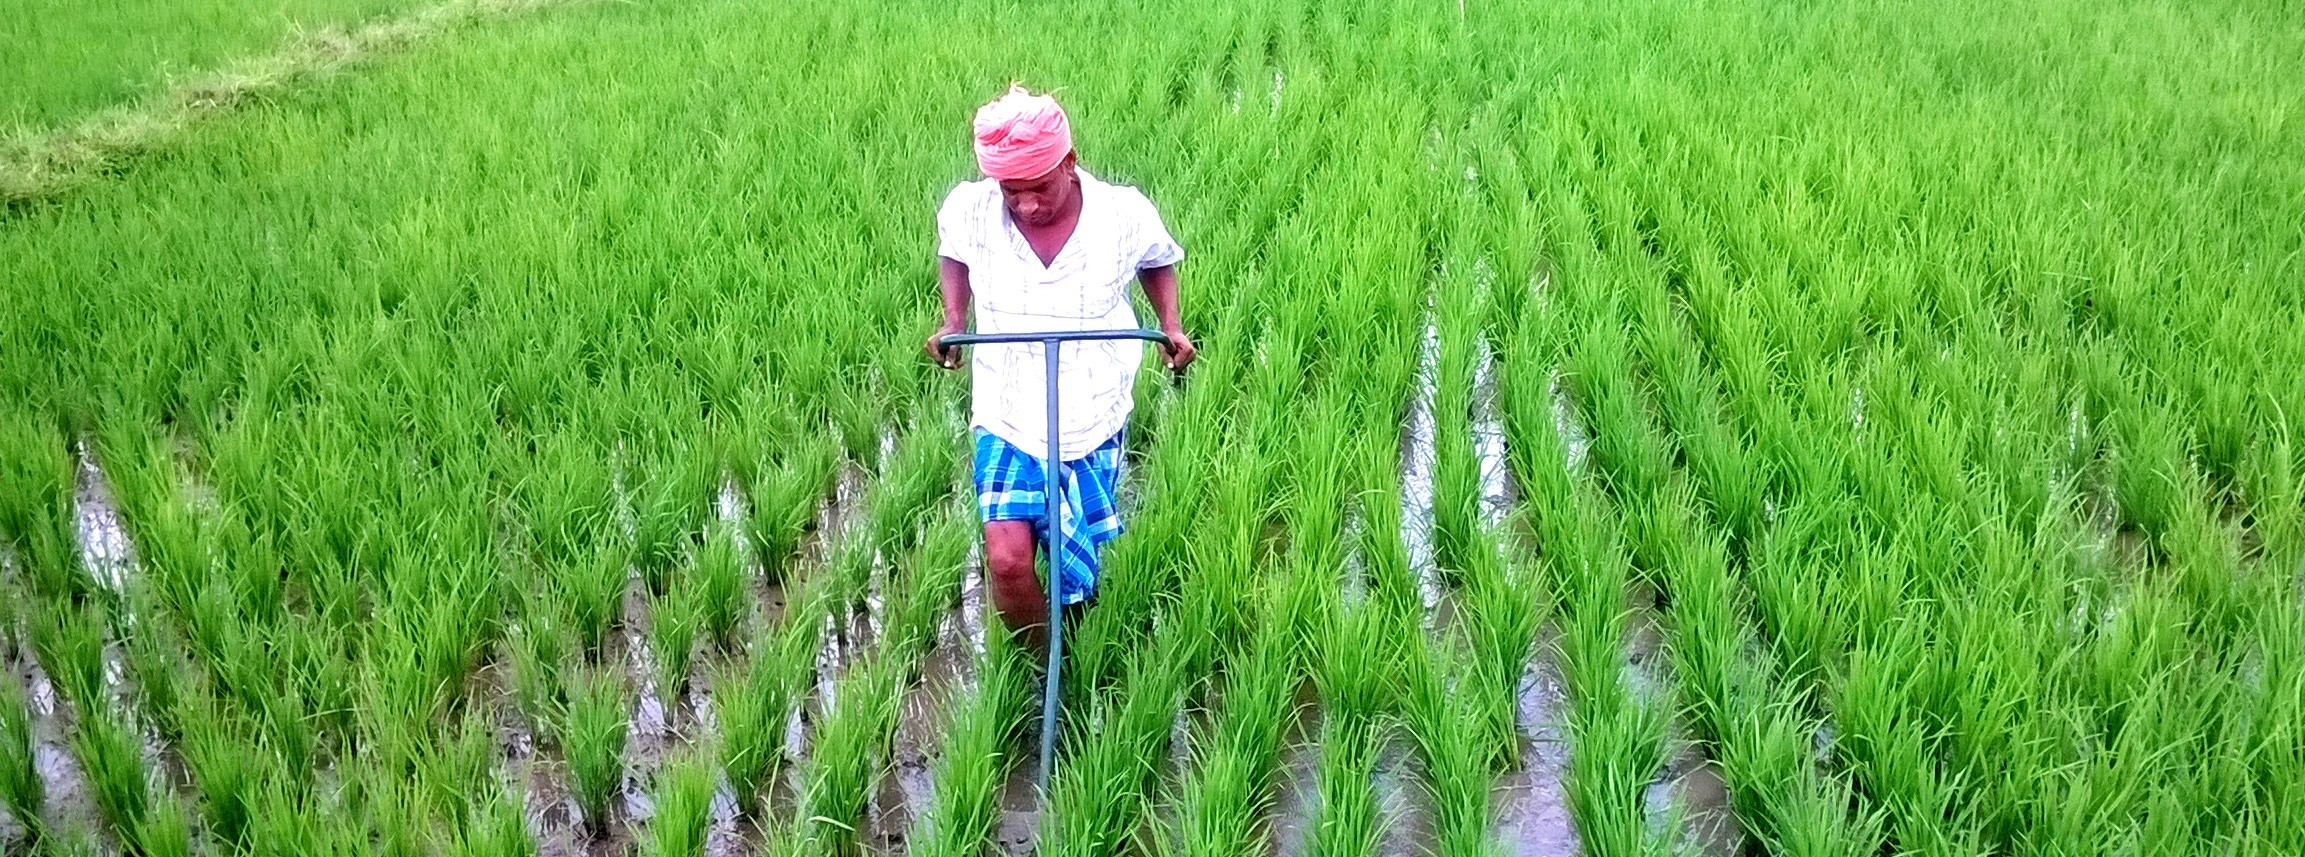 Enhancing Agricultural Production